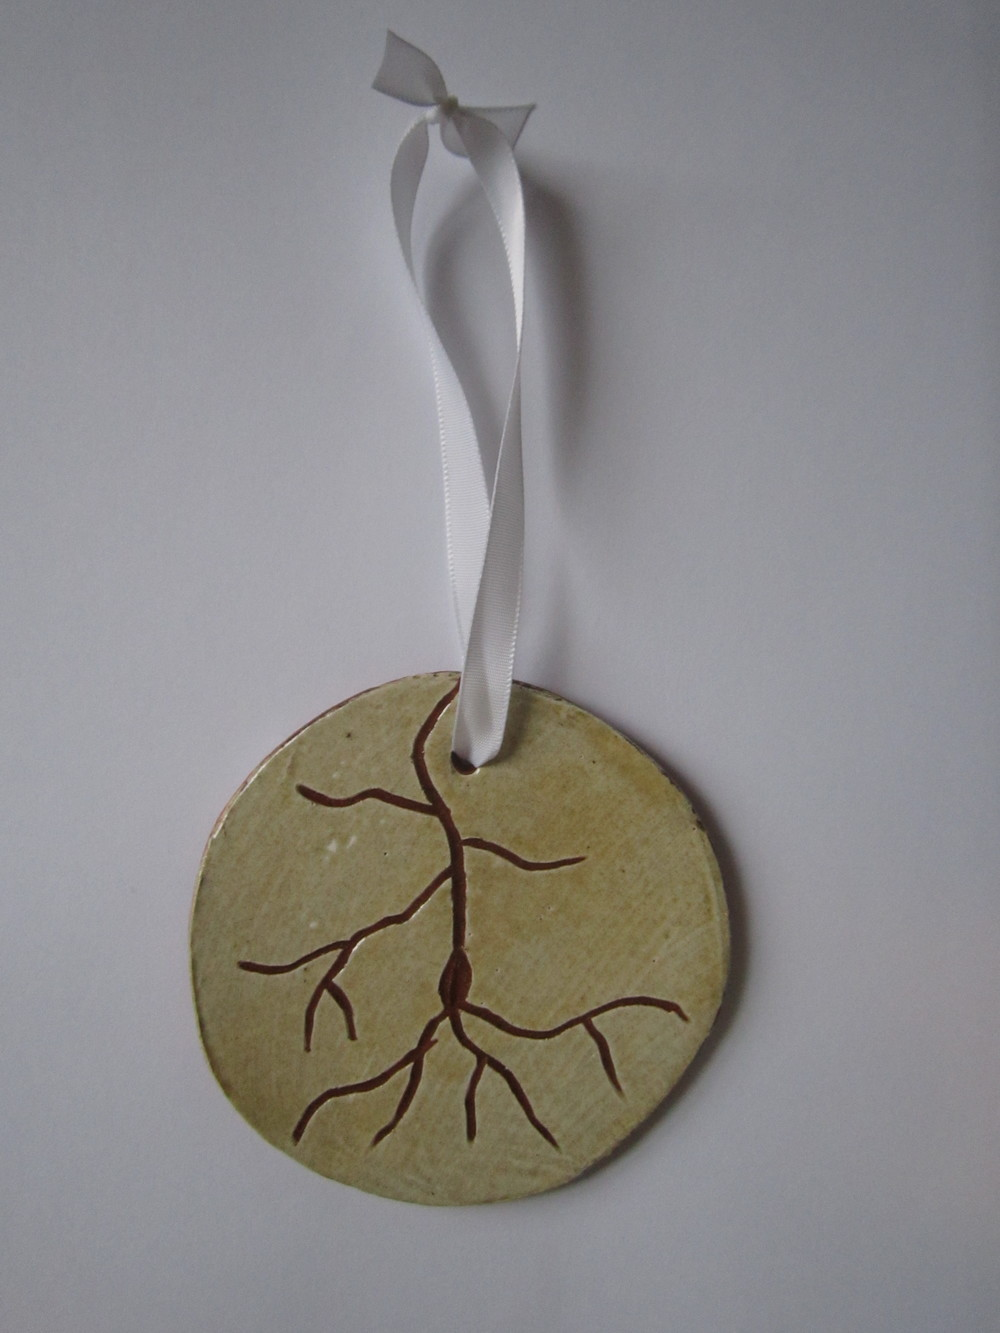 Beige Neuron Ornament 1.JPG